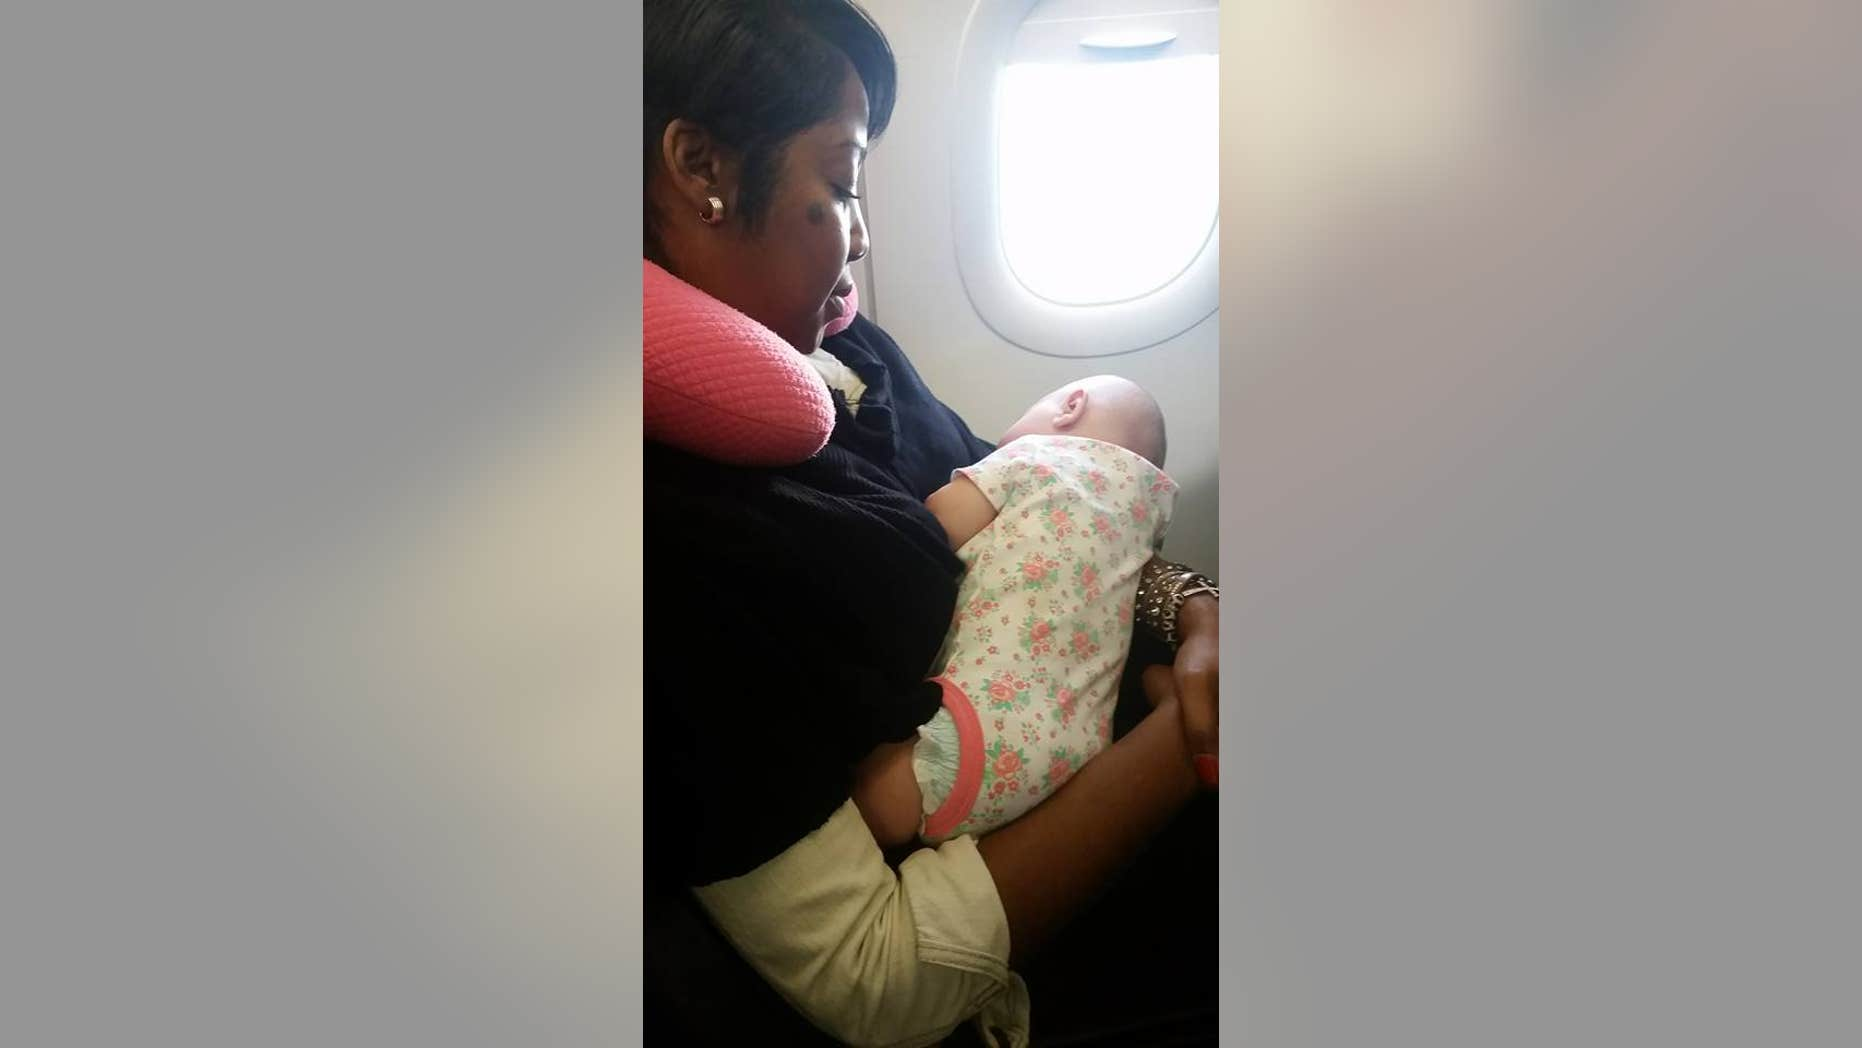 Nyfesha Miller stepped in to help quiet a stranger's newborn on a long flight.